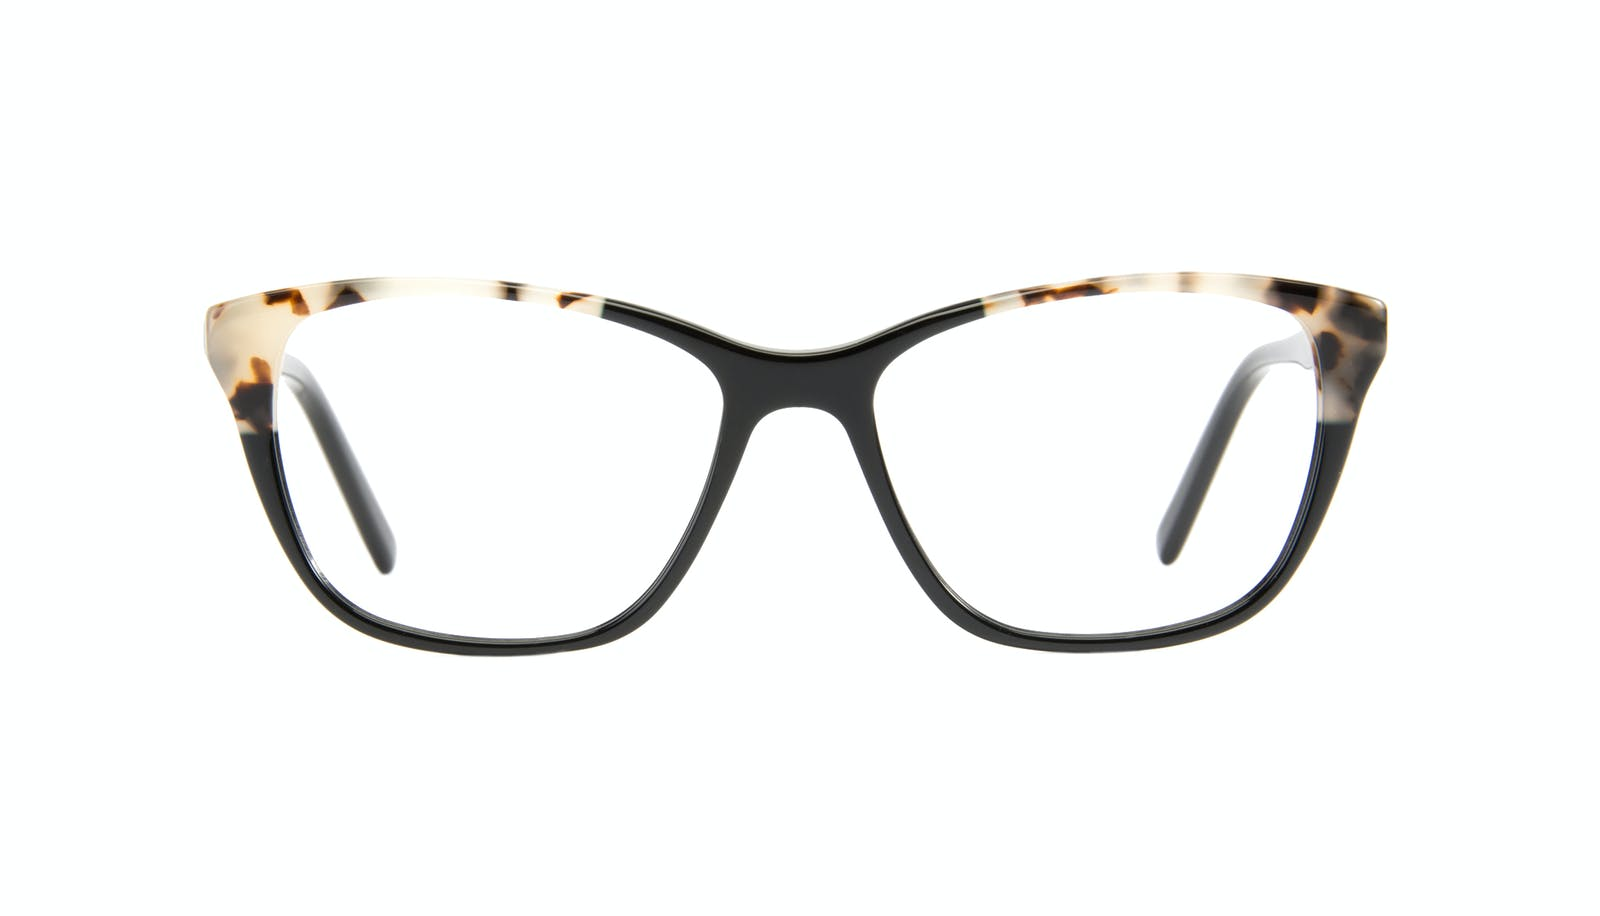 9c0c2d10ba Affordable Fashion Glasses Cat Eye Eyeglasses Women Myrtle Petite Ebony  Granite